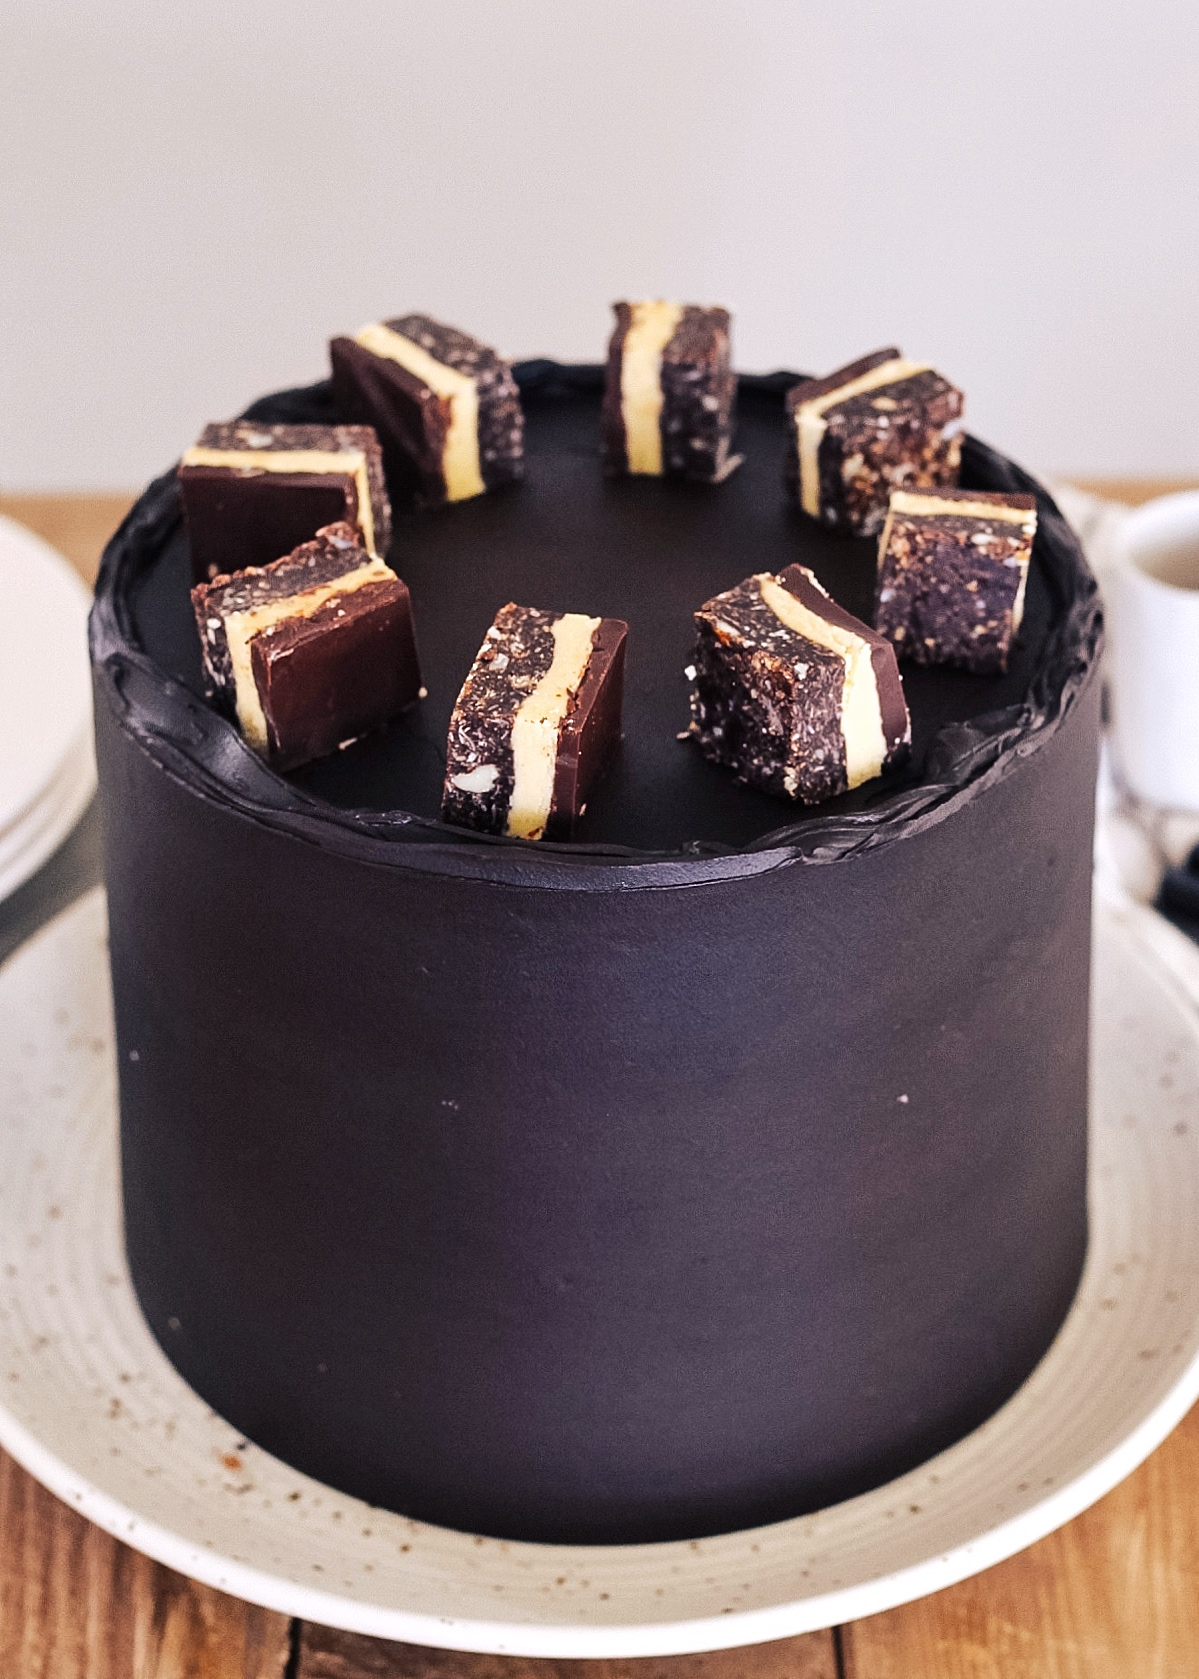 Nanaimo Bar Cake - the most delicious chocolate cake layers baked on a graham cracker, almond, coconut, and chocolate crust, with a custard filing and covered in a chocolate fudge buttercream. #cakebycourtney #nanaimobarcake #nanaimobarcakerecipe #cakerecipe #chocolatecakerecipe #fudgebuttercream #bestcakerecipe #nanaimobars #nanaimobarrecipe